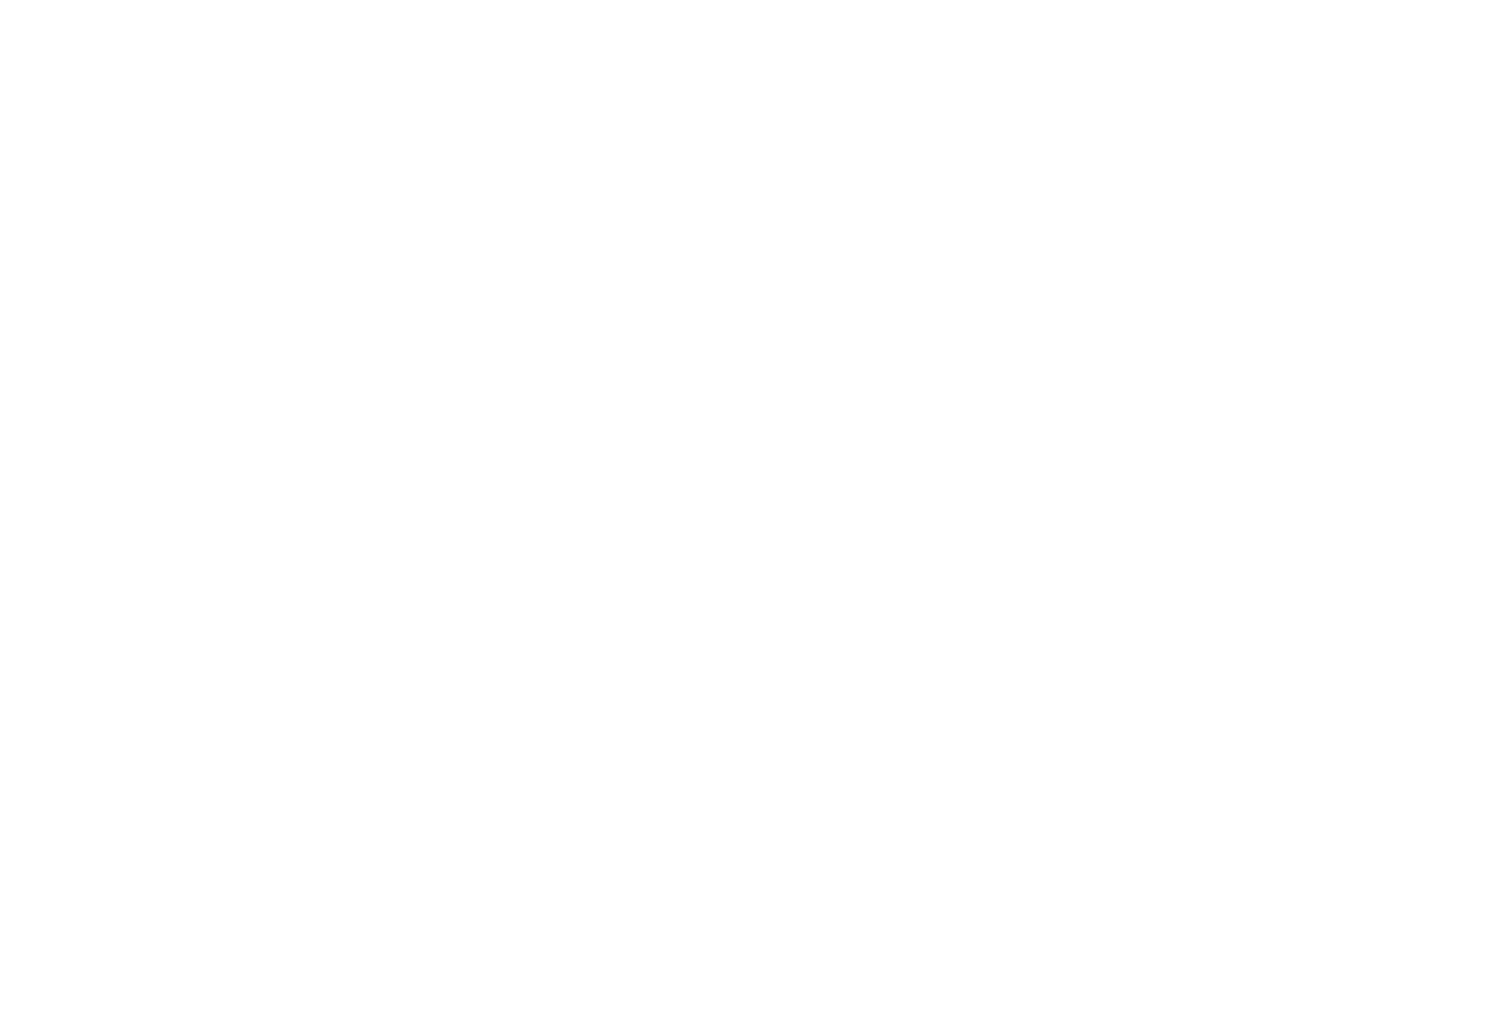 Black Forest Trading Post and Deer Park